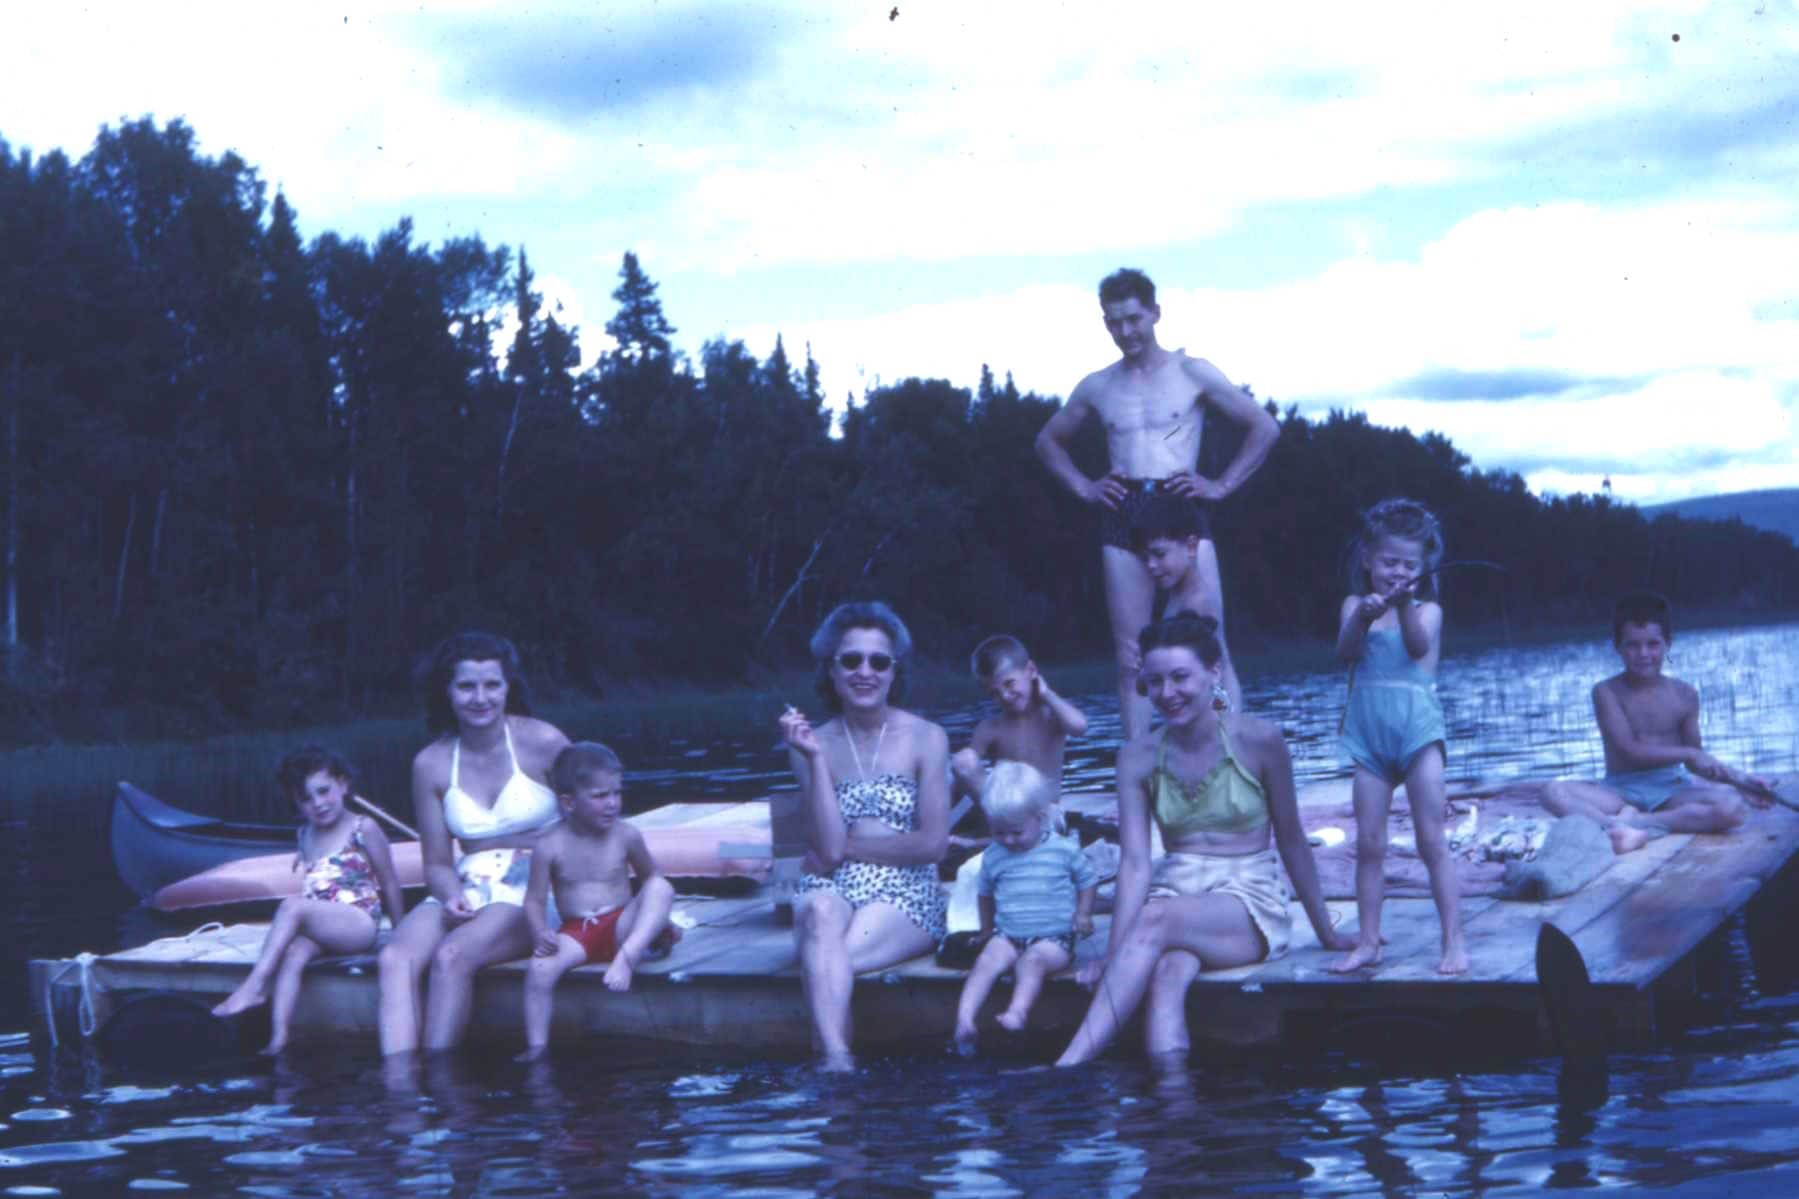 Left to Right:  Carolyn Clasby, Pat Cook, Jeff Cook, Hazel Clasby in sun glasses, Jill Baggen the blond child, Mike Cook behind Jill, Mertie Baggen, young Bob Clasby behind Mertie and in front of Earl Cook, Wendy Baggen and Skip Cook.  Taken around 1946.